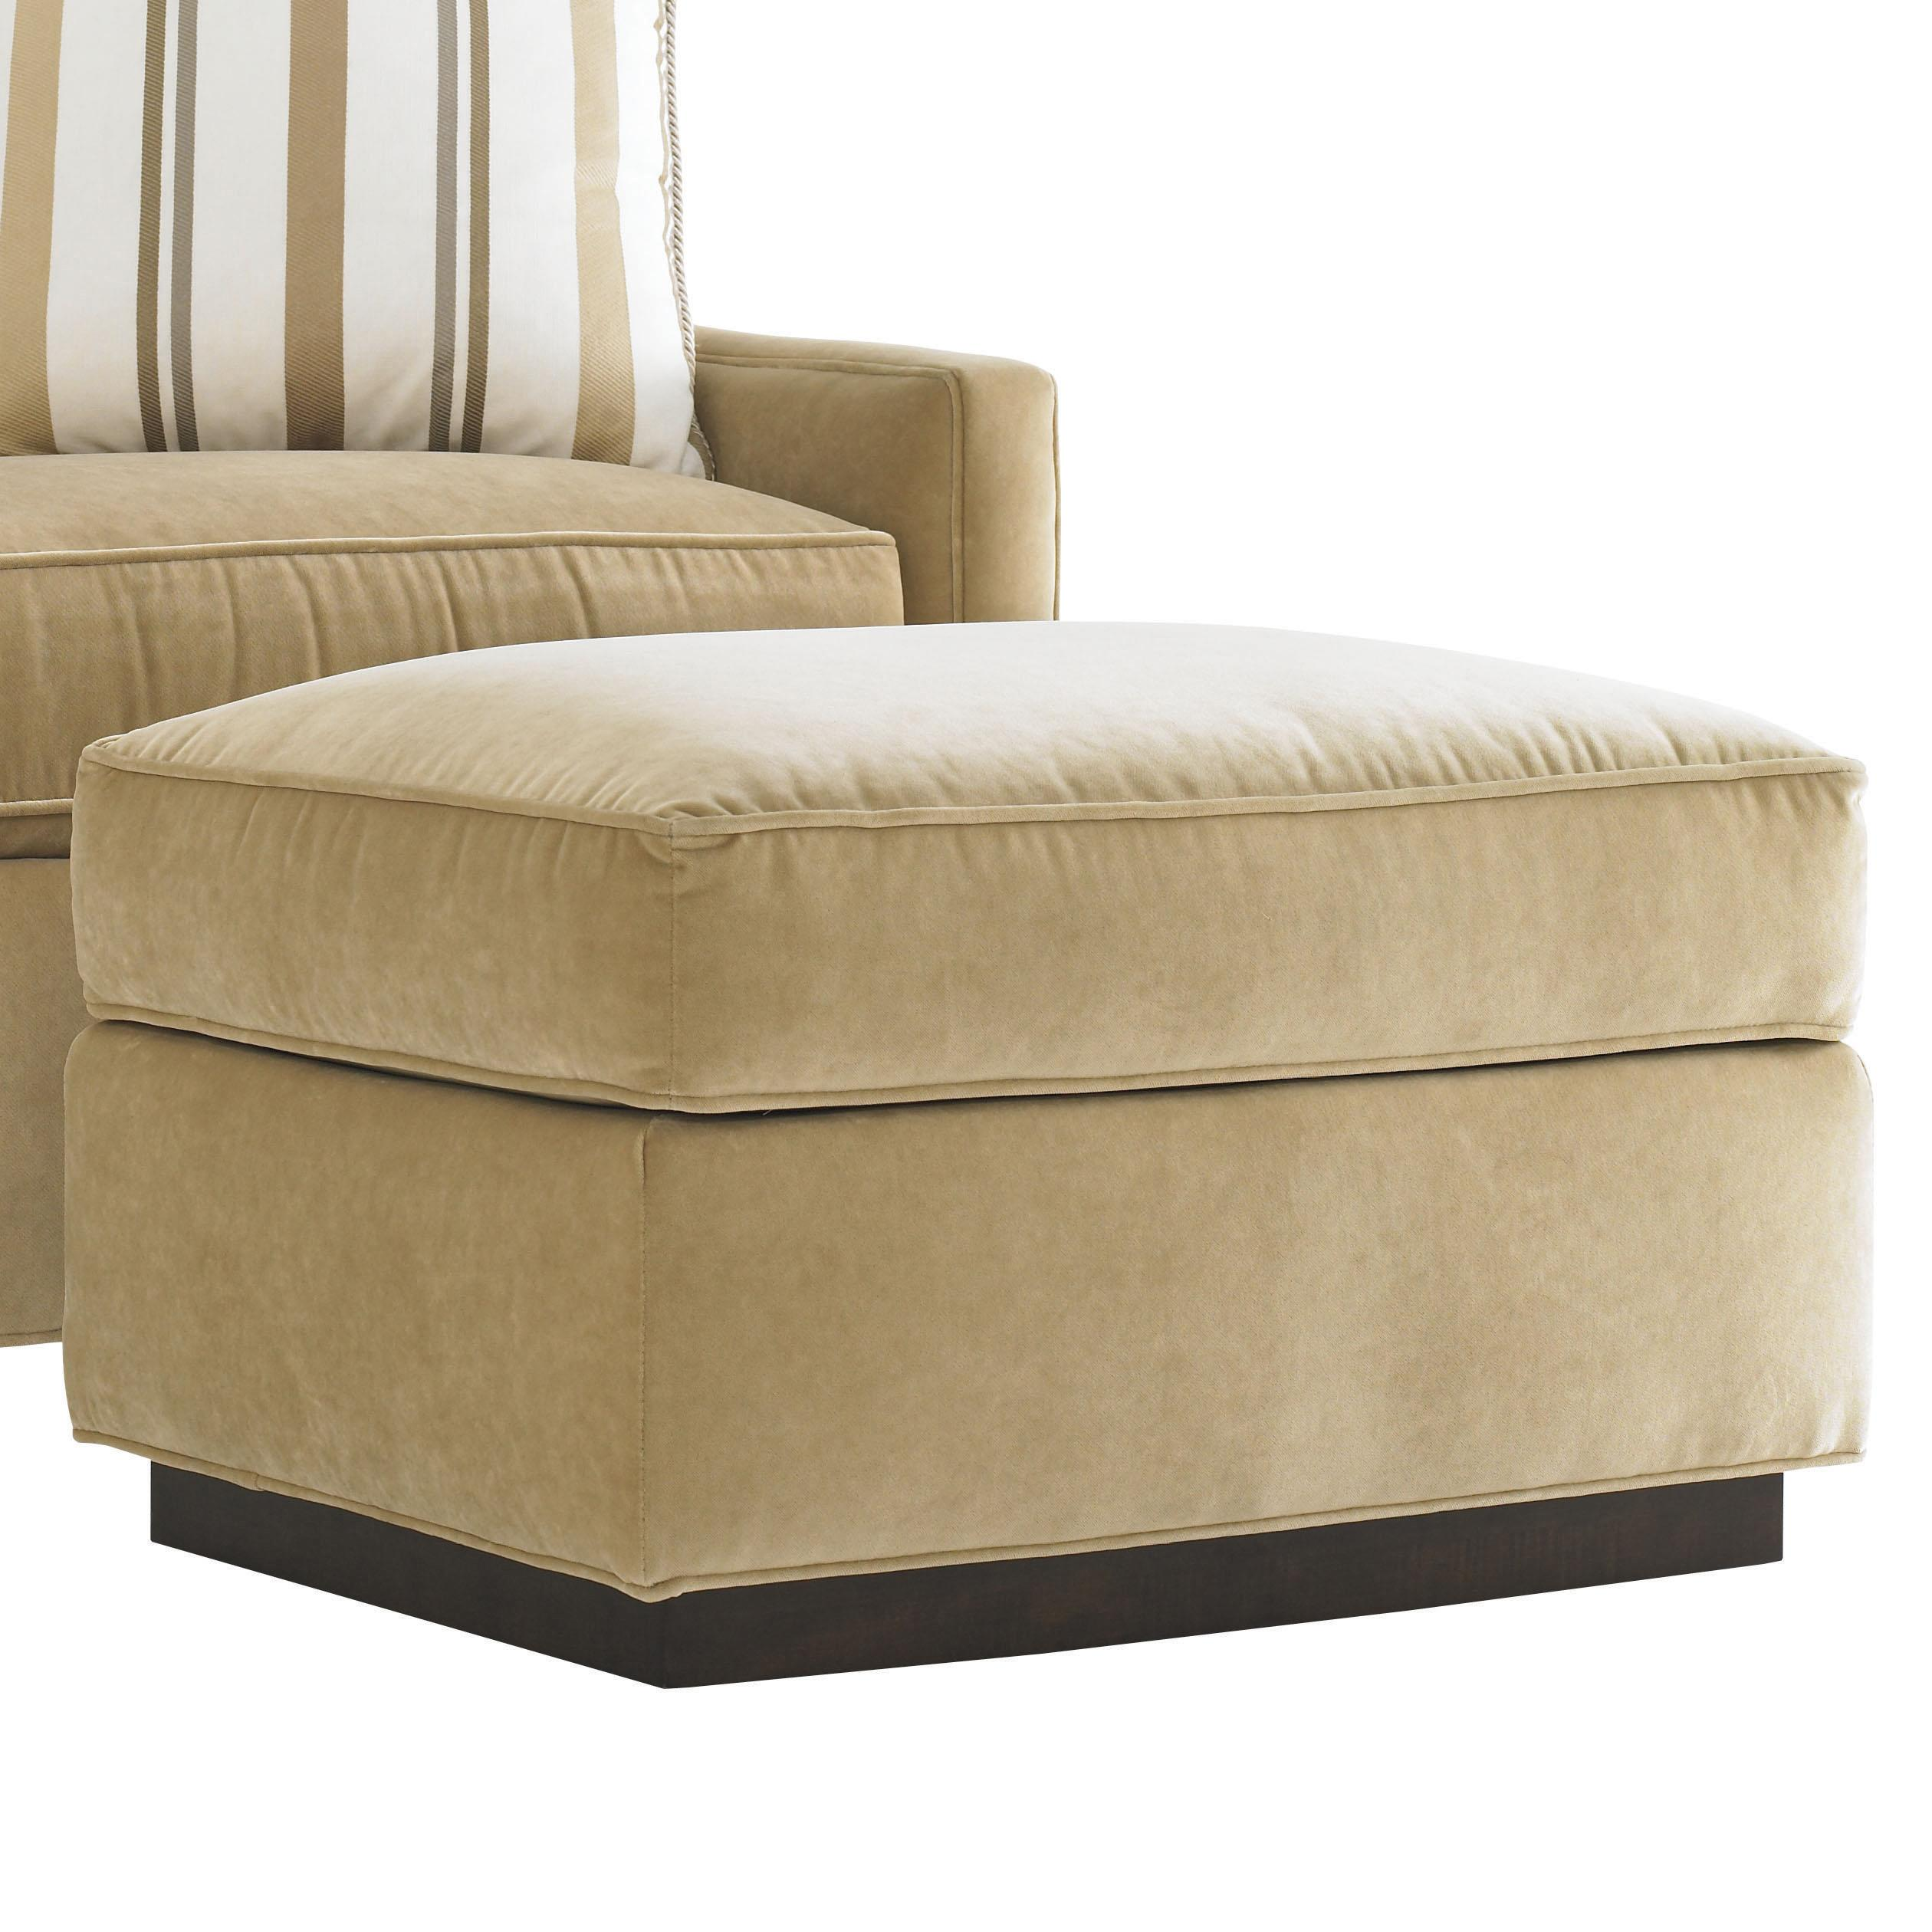 Lexington Tower Place 7566 44 Contemporary Bartlett Ottoman With Exposed Wood Base John V